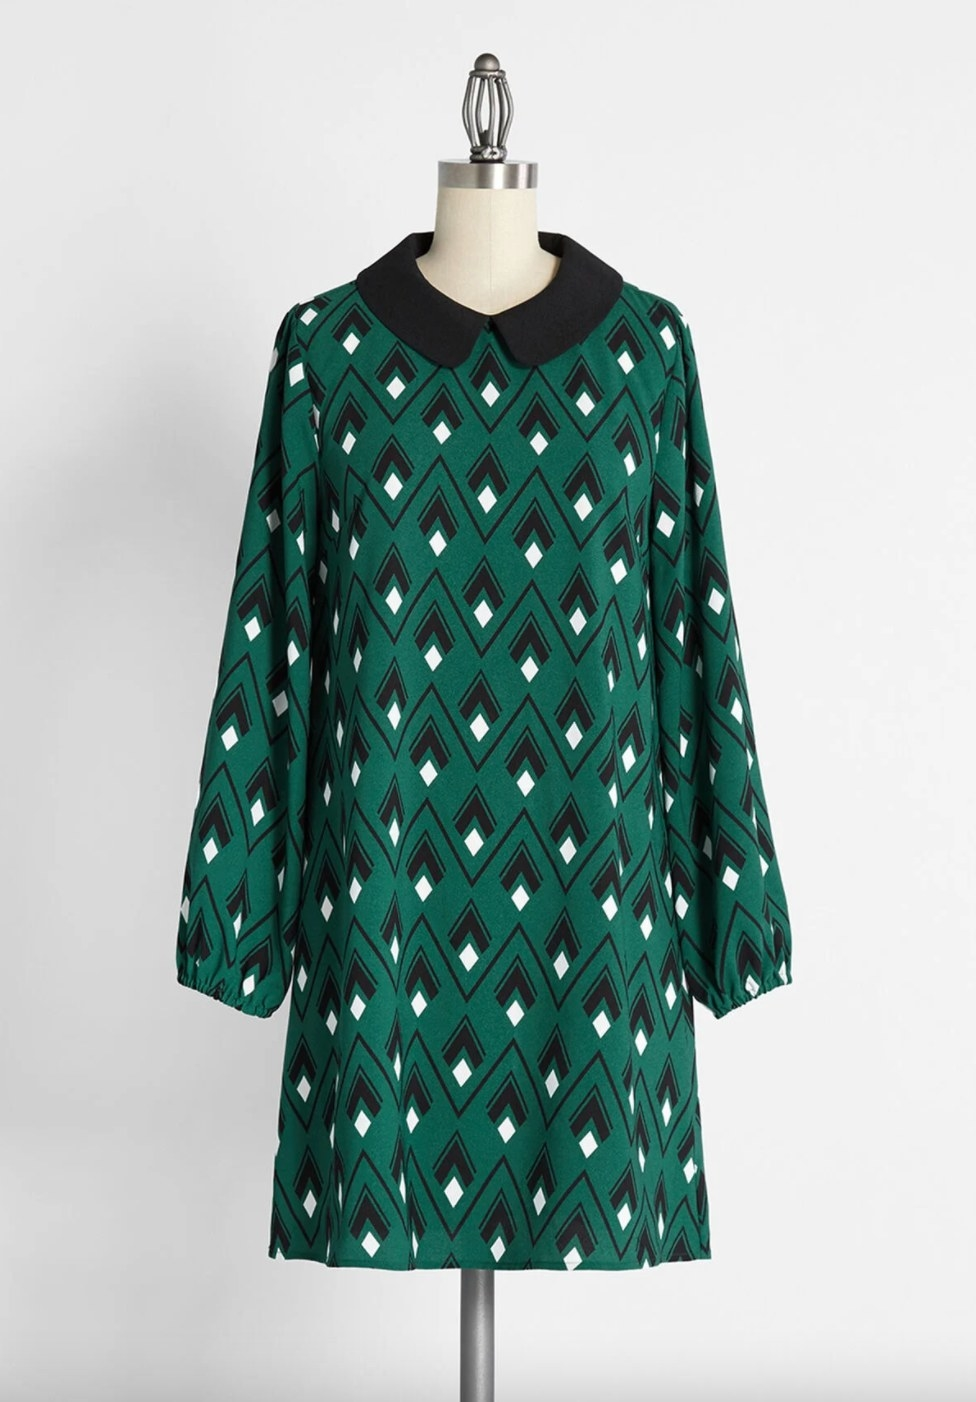 The long-sleeved shift dress in green geometric pattern with a black peter pan collar